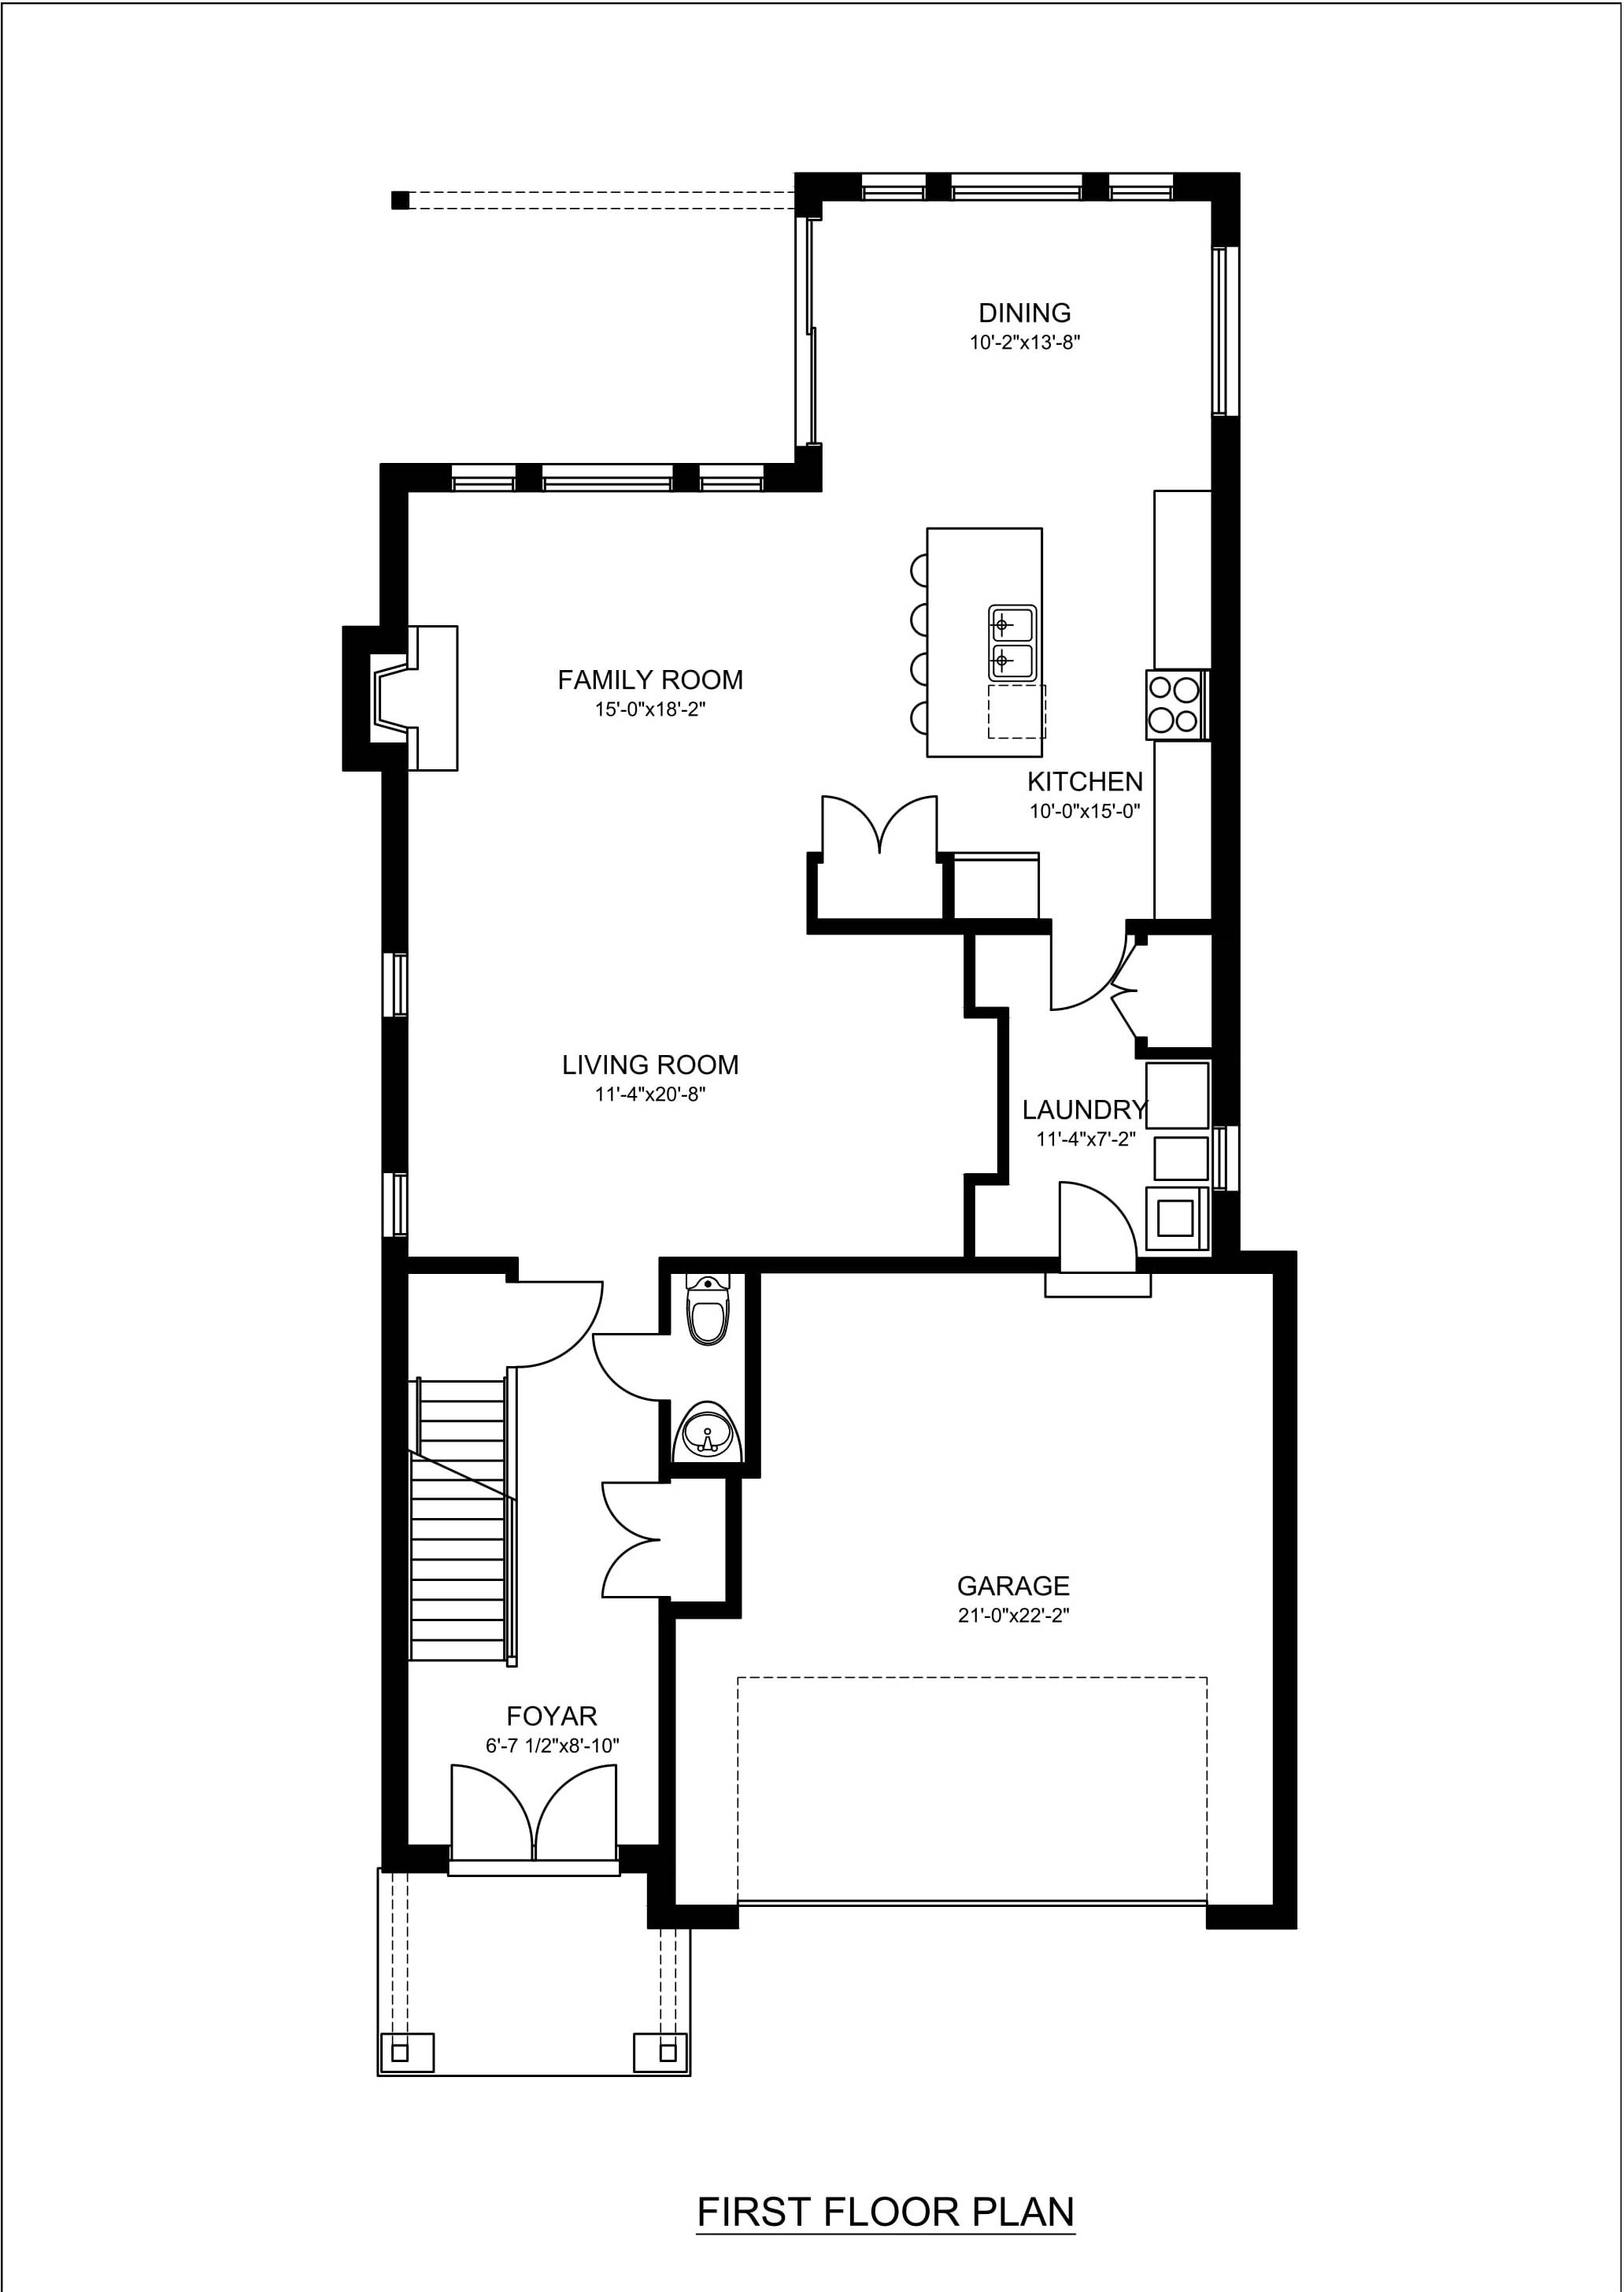 Real estate 2d floor plans design rendering samples Bad floor plans examples